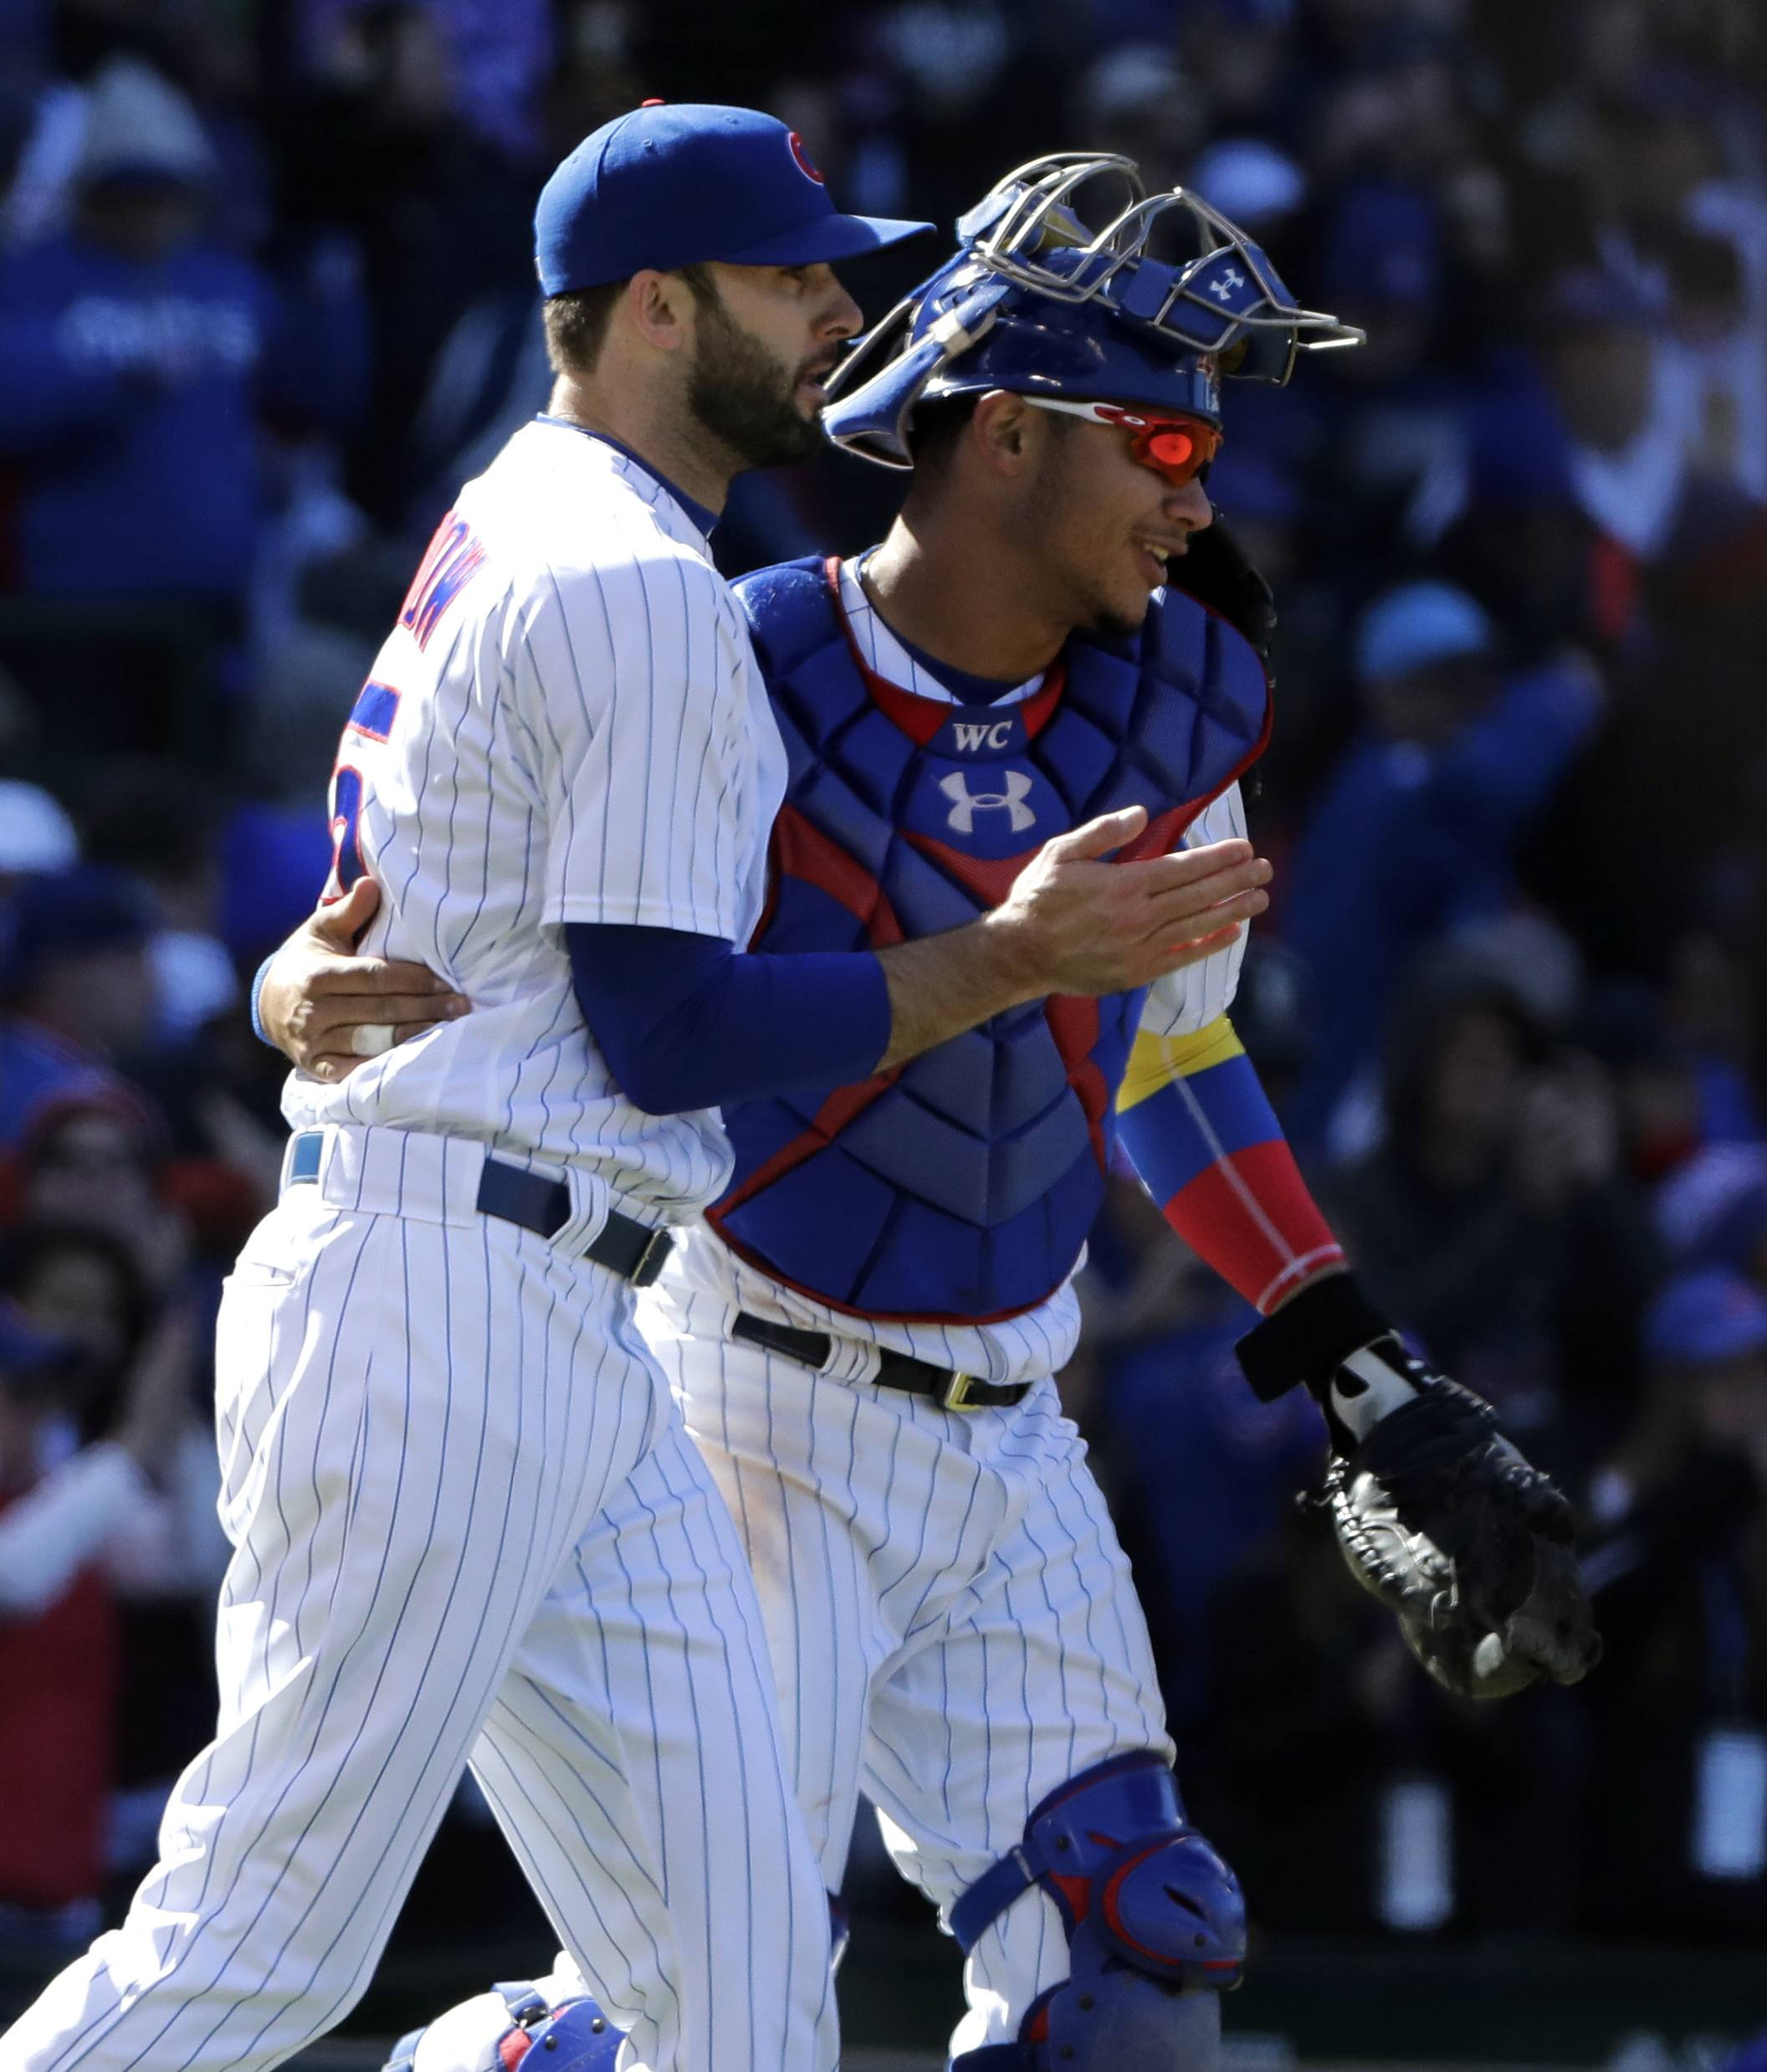 Chicago Cubs closer Brandon Morrow, left, celebrates with catcher Willson Contreras after they defeated the Milwaukee Brewers in a baseball game Sunday, April 29, 2018, in Chicago. (AP Photo/Nam Y. Huh)